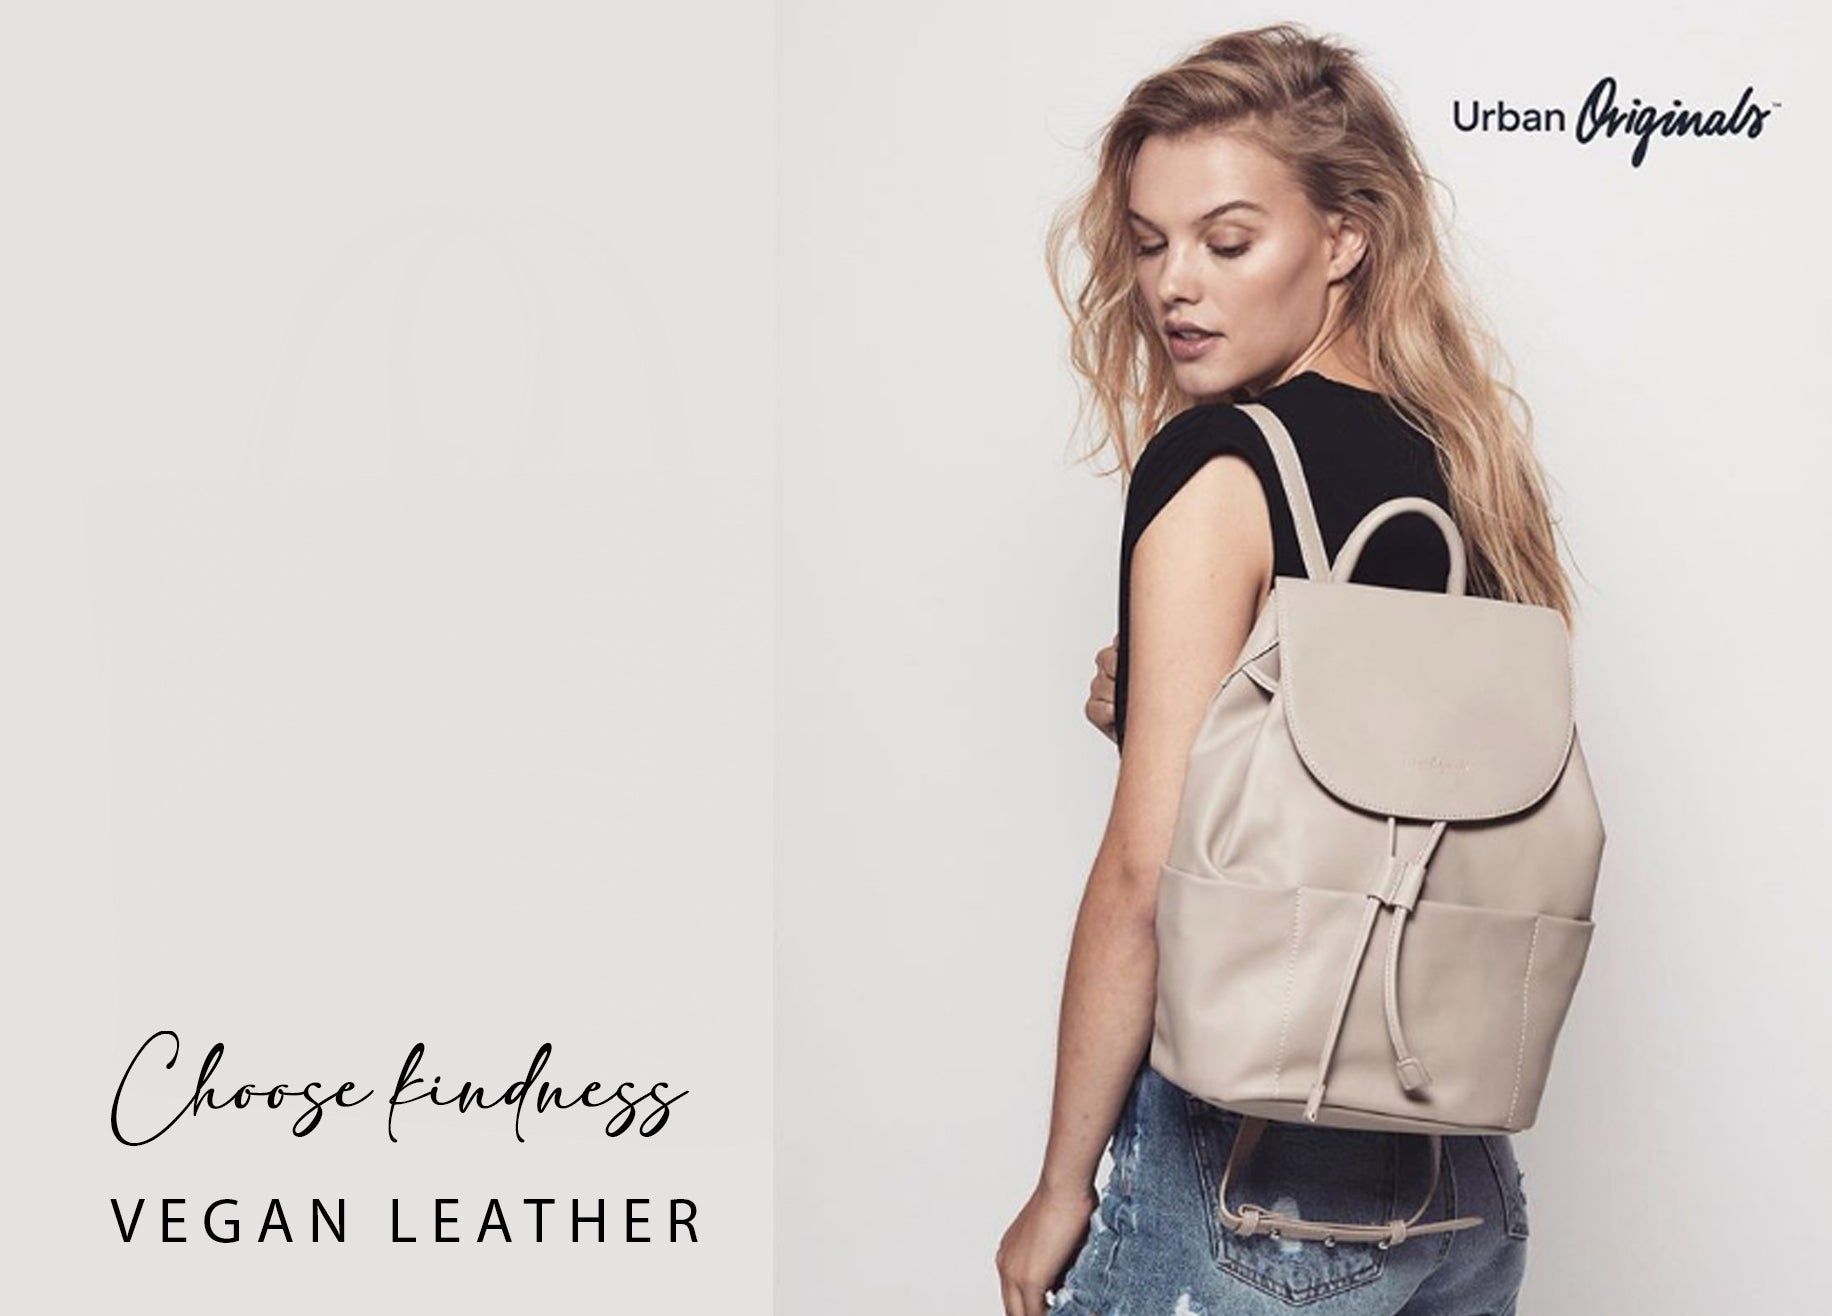 Urban_Originals_Vegan_Leather